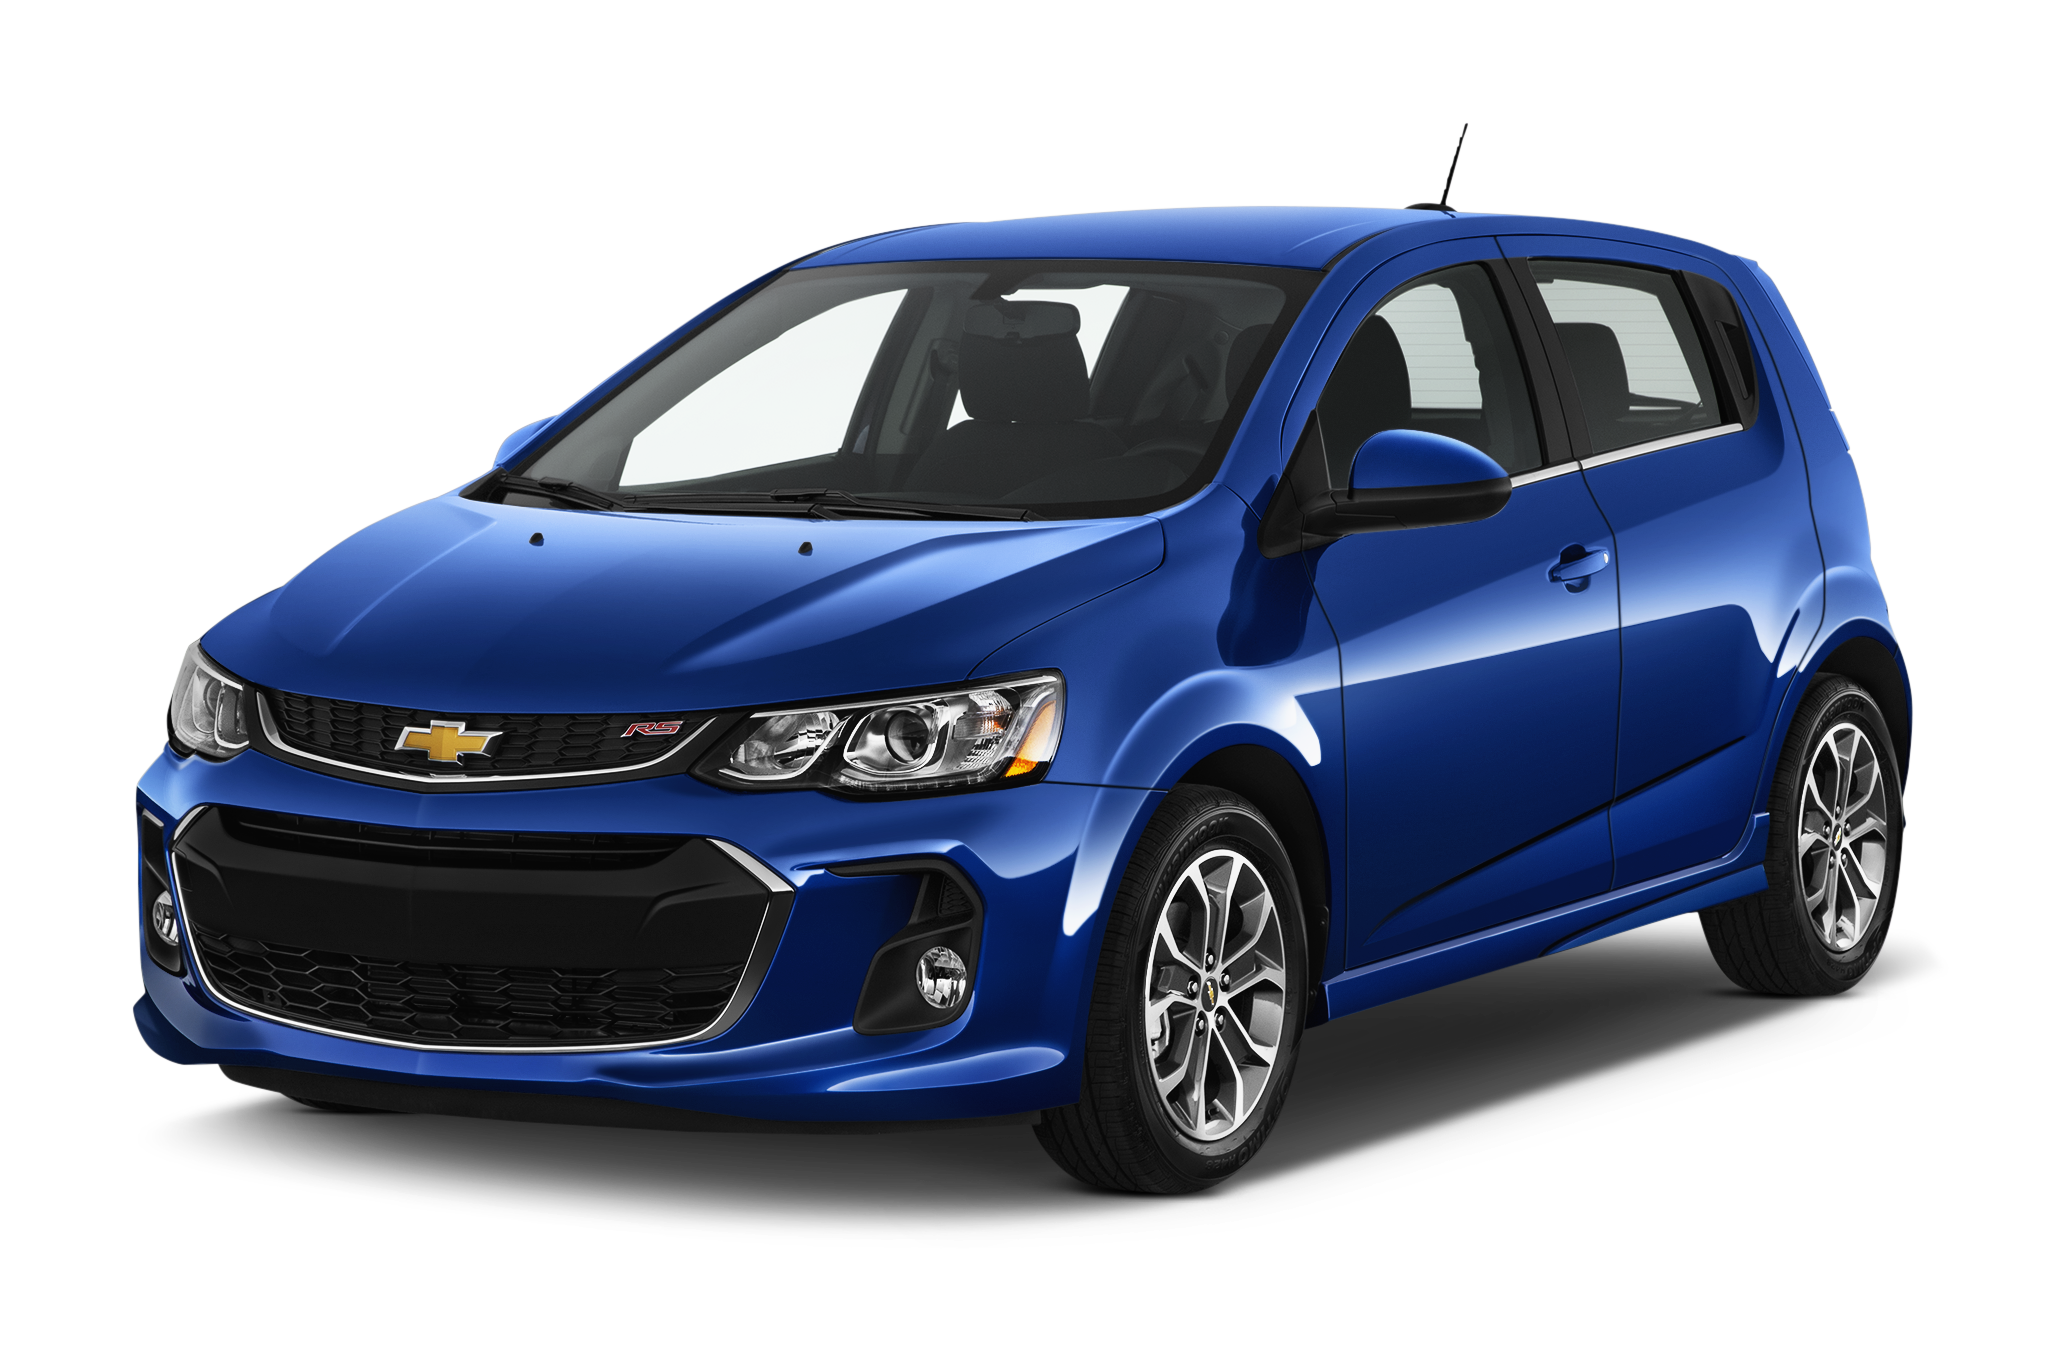 2017 chevy sonic performance tech safety review from chevrolet of naperville. Black Bedroom Furniture Sets. Home Design Ideas